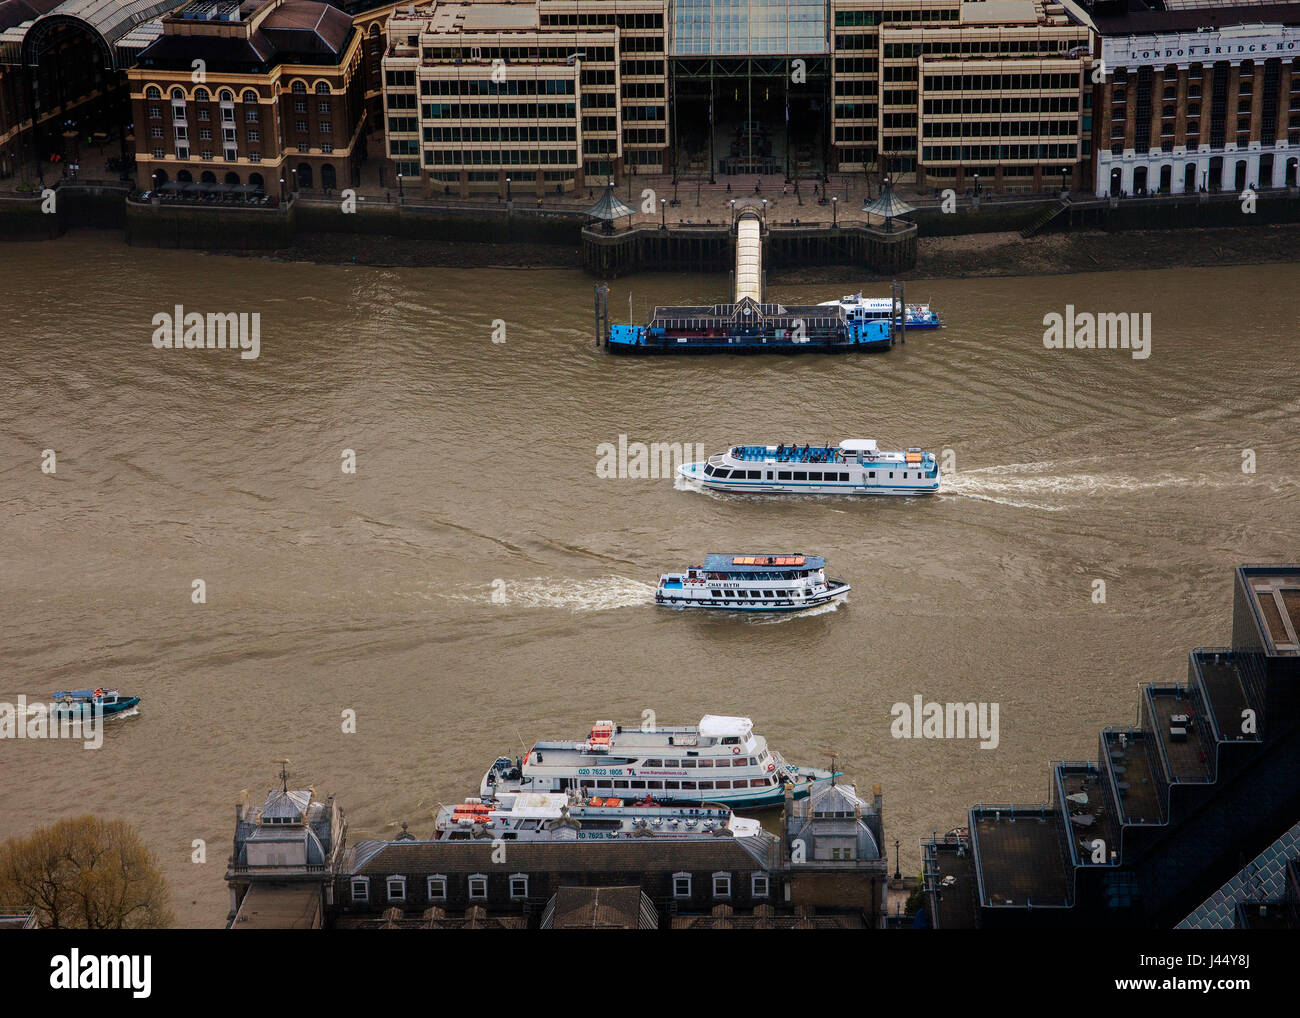 two tourist pleasure cruisers passing on Thames London from above - Stock Image